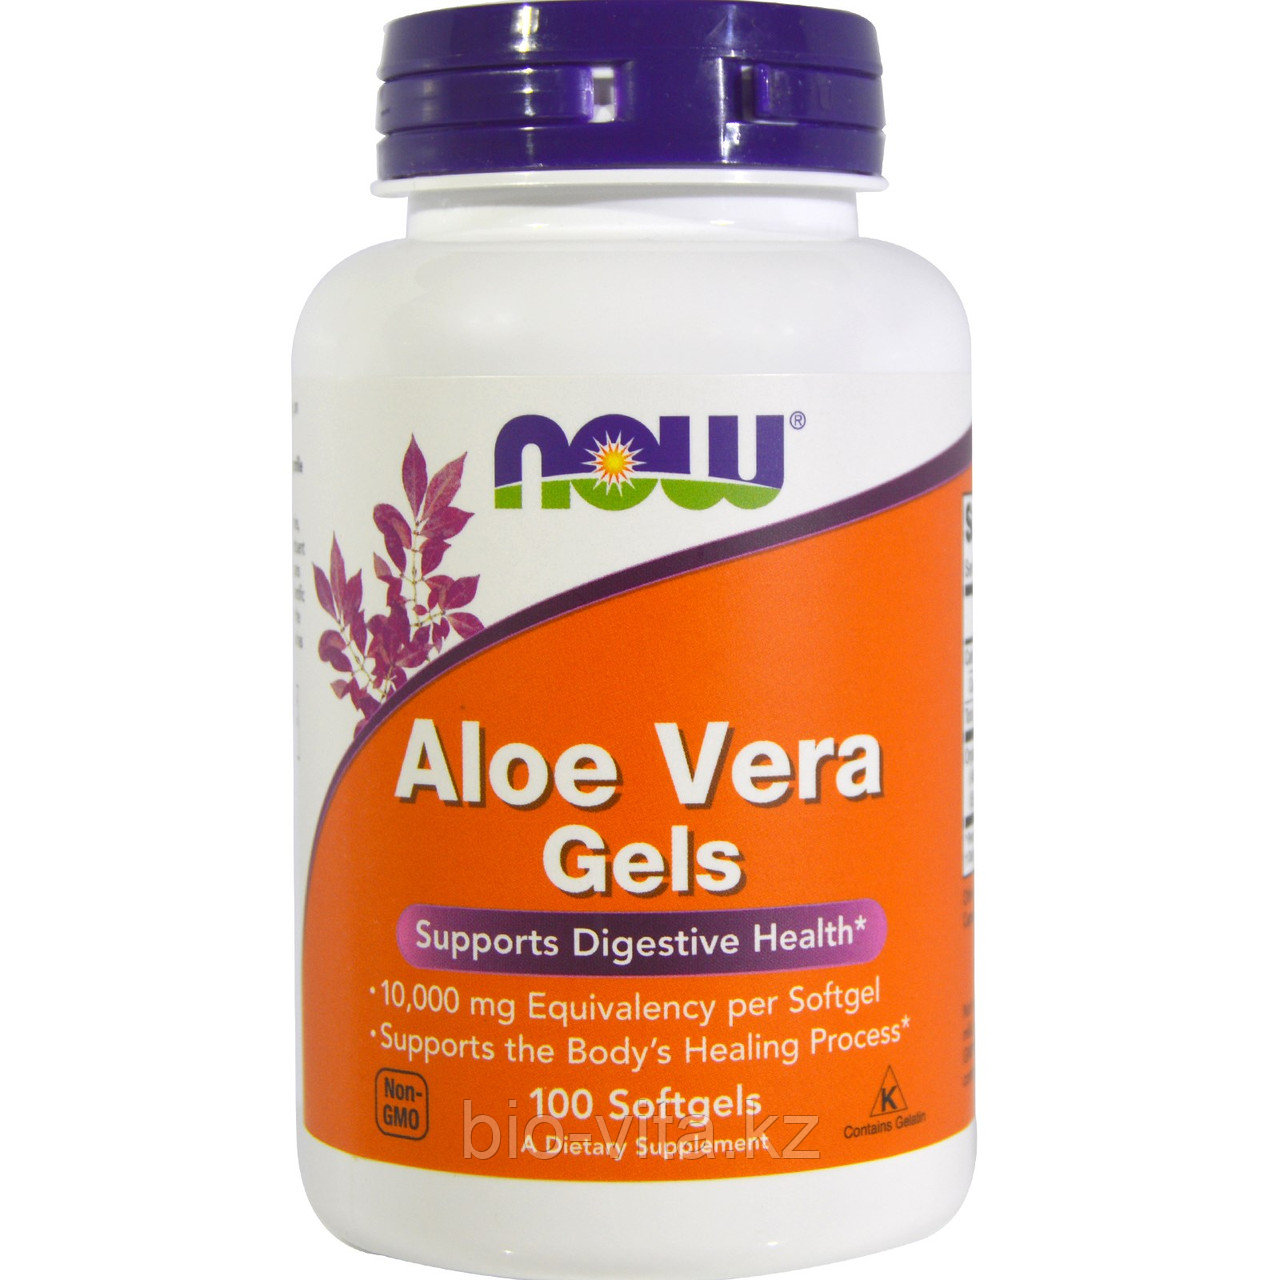 Алое вера. Aloe Vera Gels, 100 Softgels. Now Foods